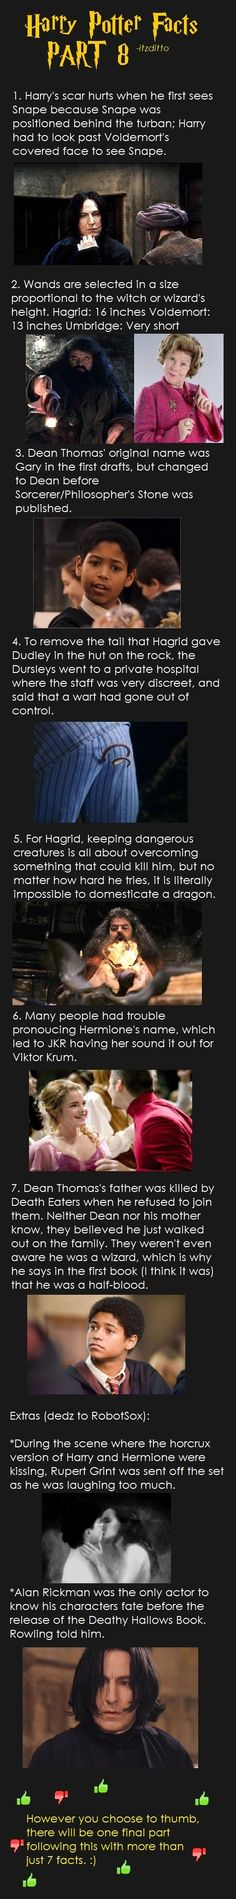 Harry Potter Facts Part 8. I knew the one about Snape!